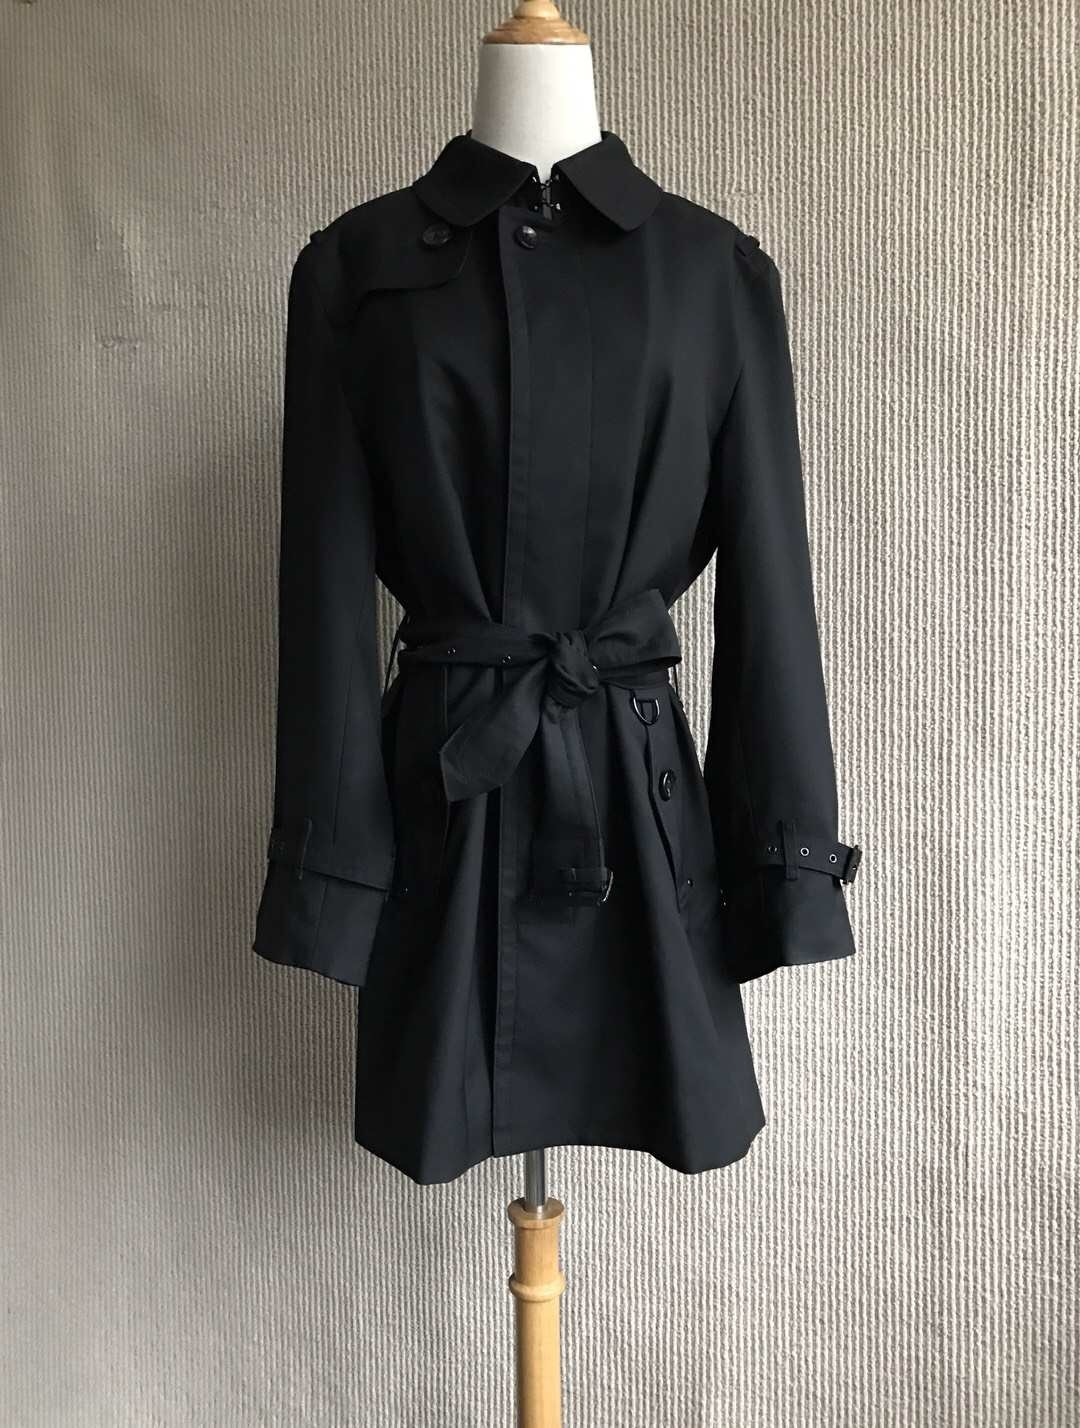 100% AUTHENTIC BURBERRY LONDON CLASSIC BLACK WOOL TRENCH COAT JAPAN